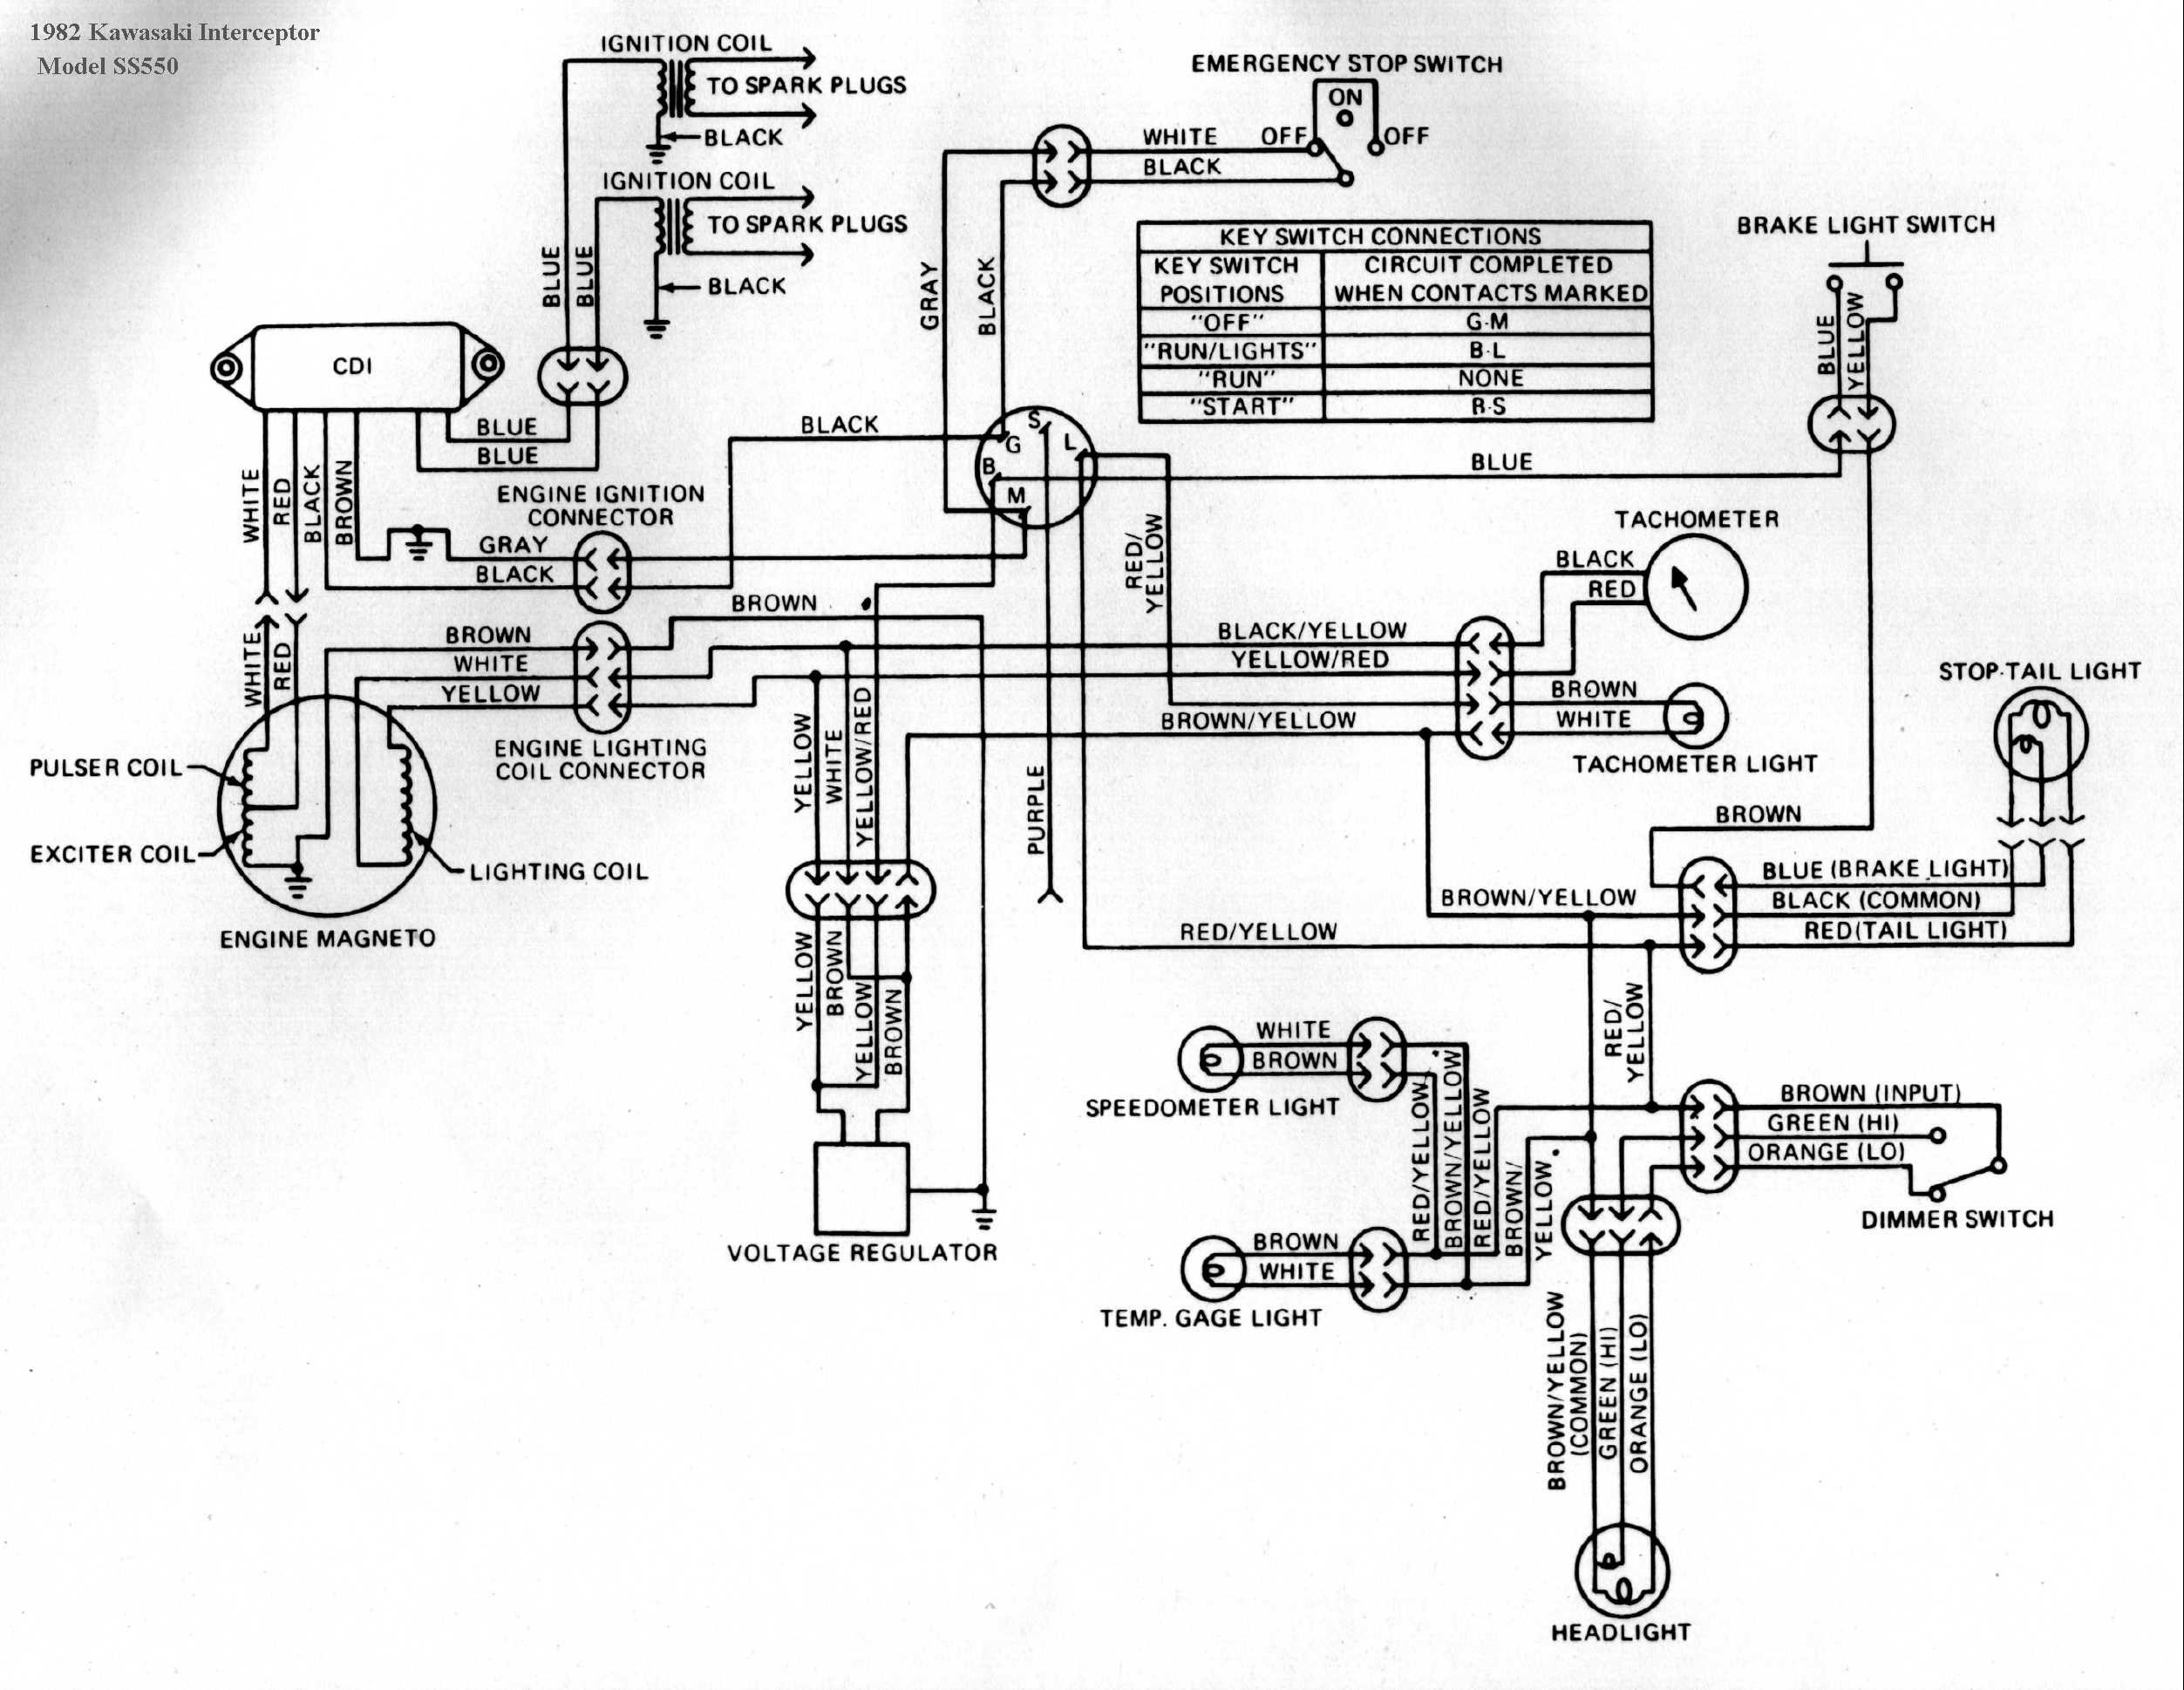 kawasaki g5 wiring diagram trusted wiring diagrams rh hamze co kawasaki g5 100 wiring diagram 1974 kawasaki g5 100 wiring diagram